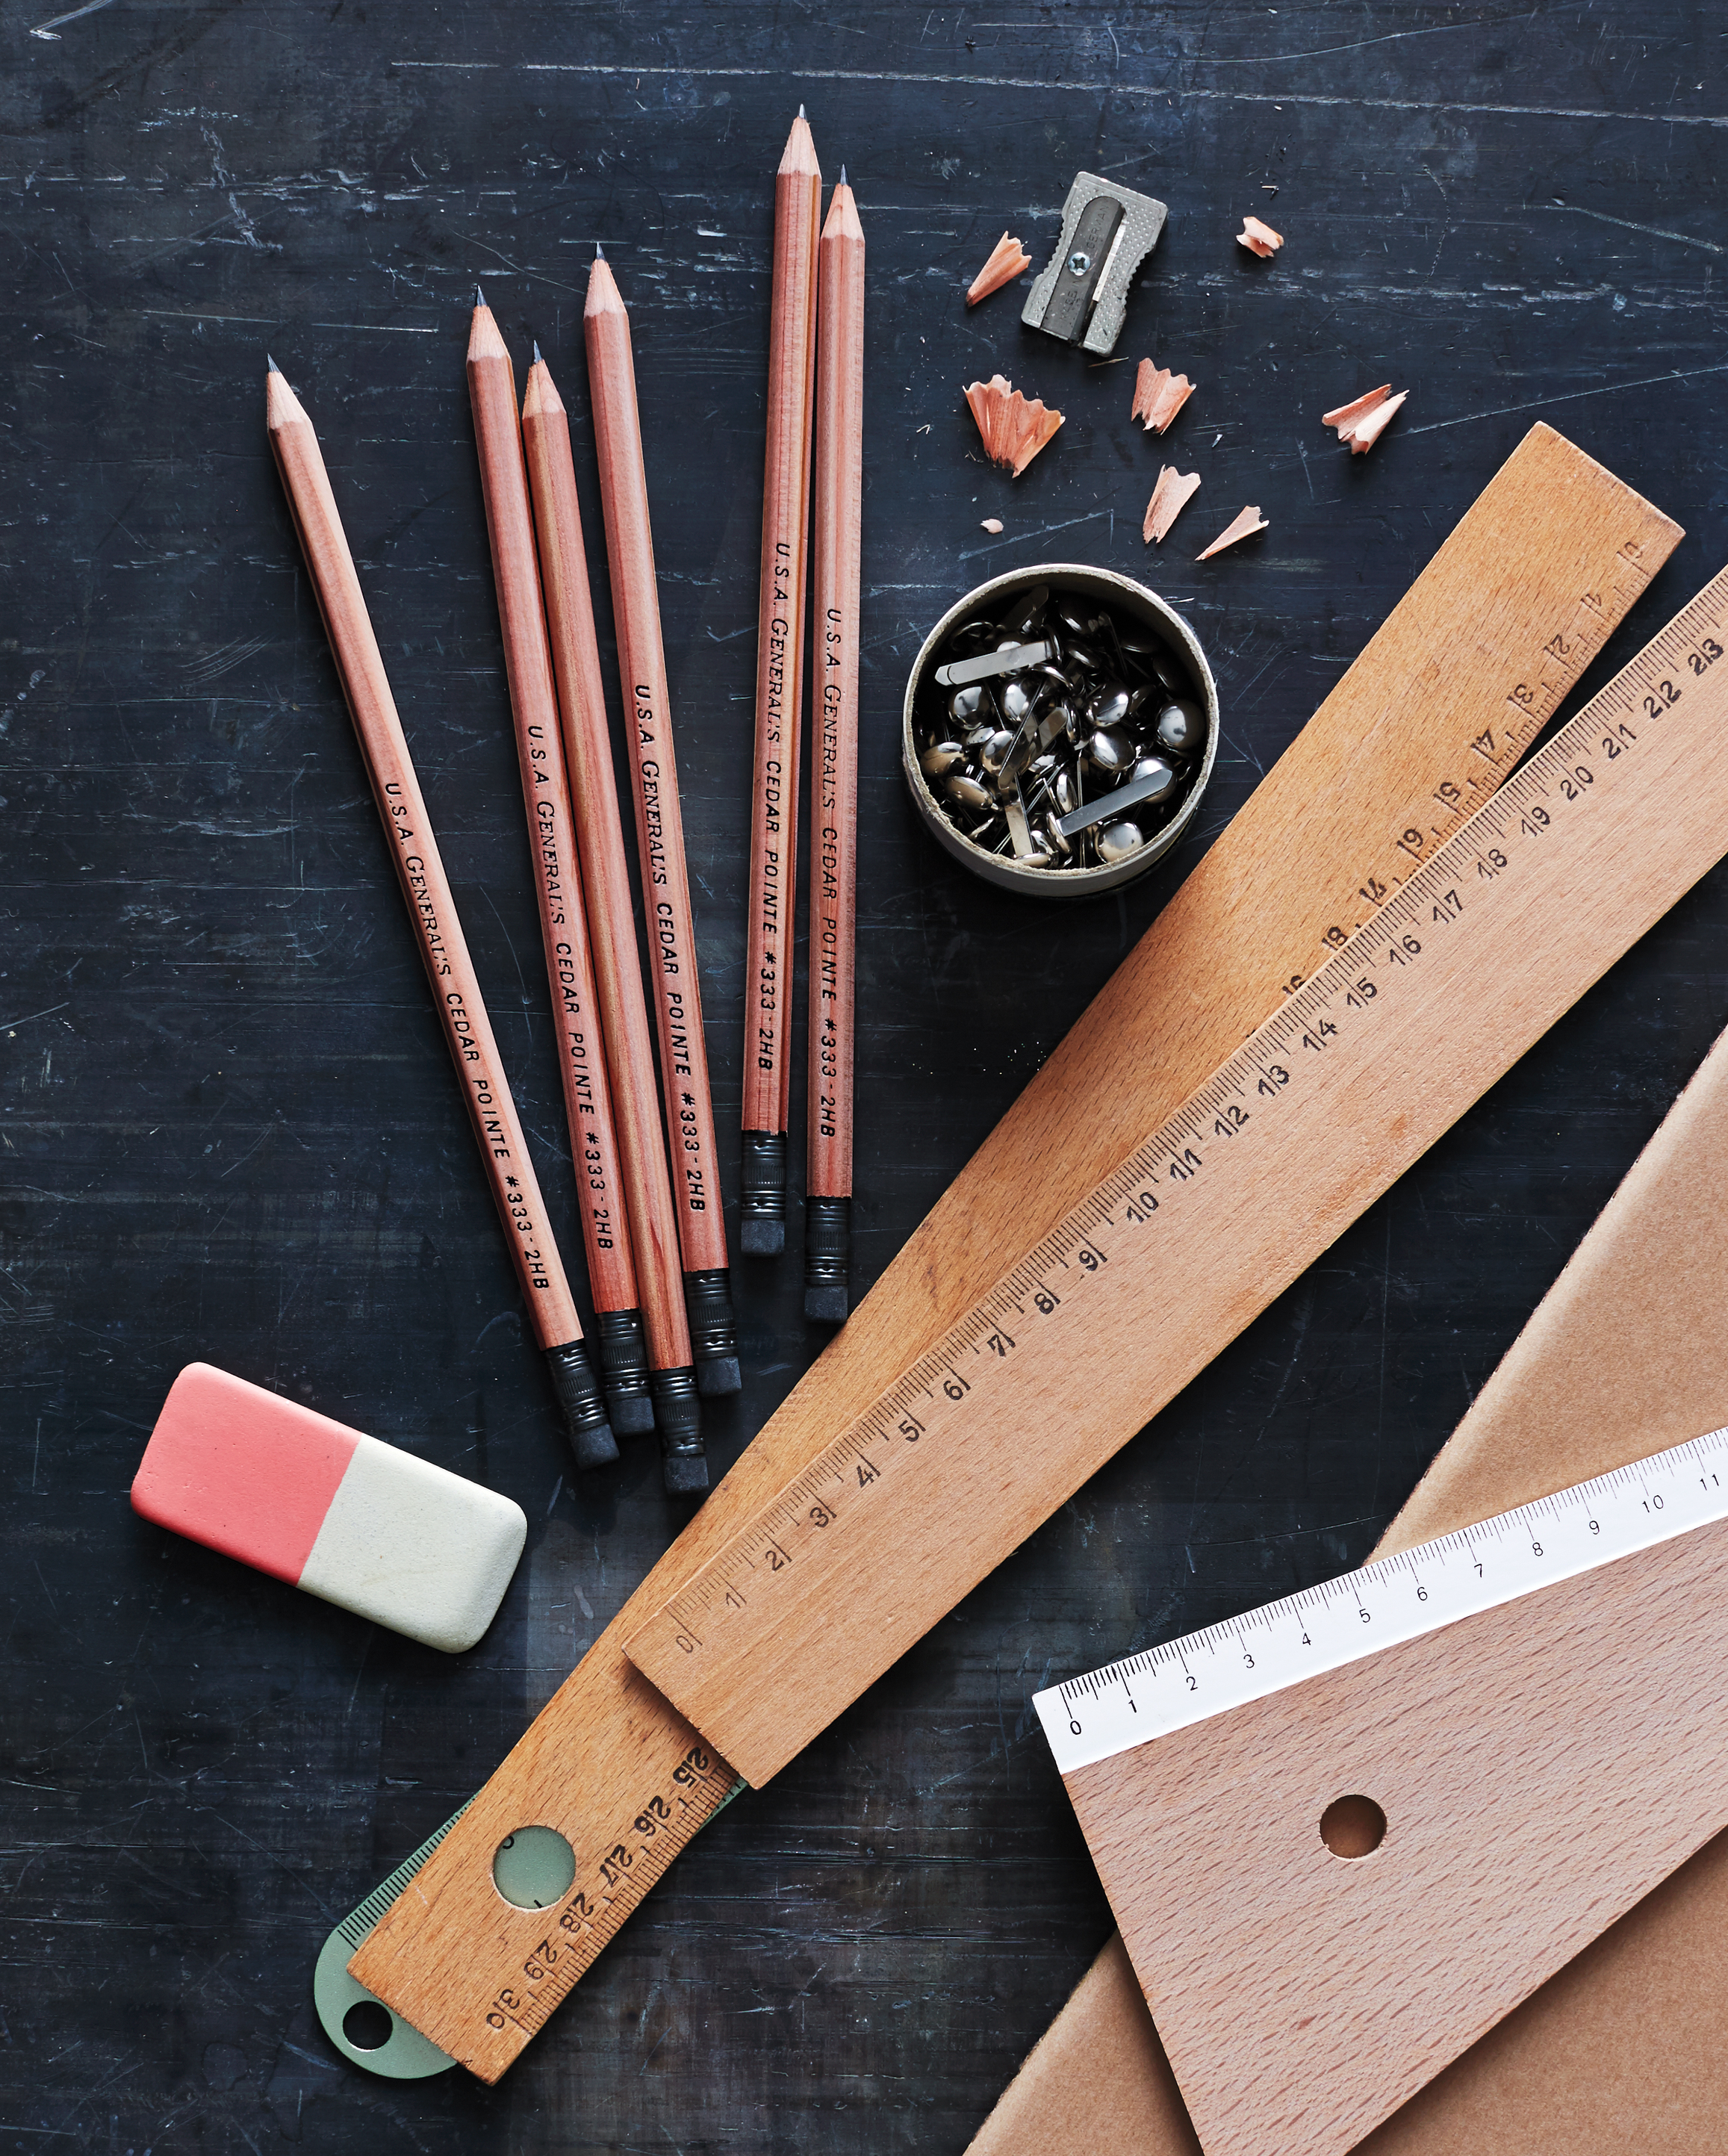 pencils from the General Pencil Company